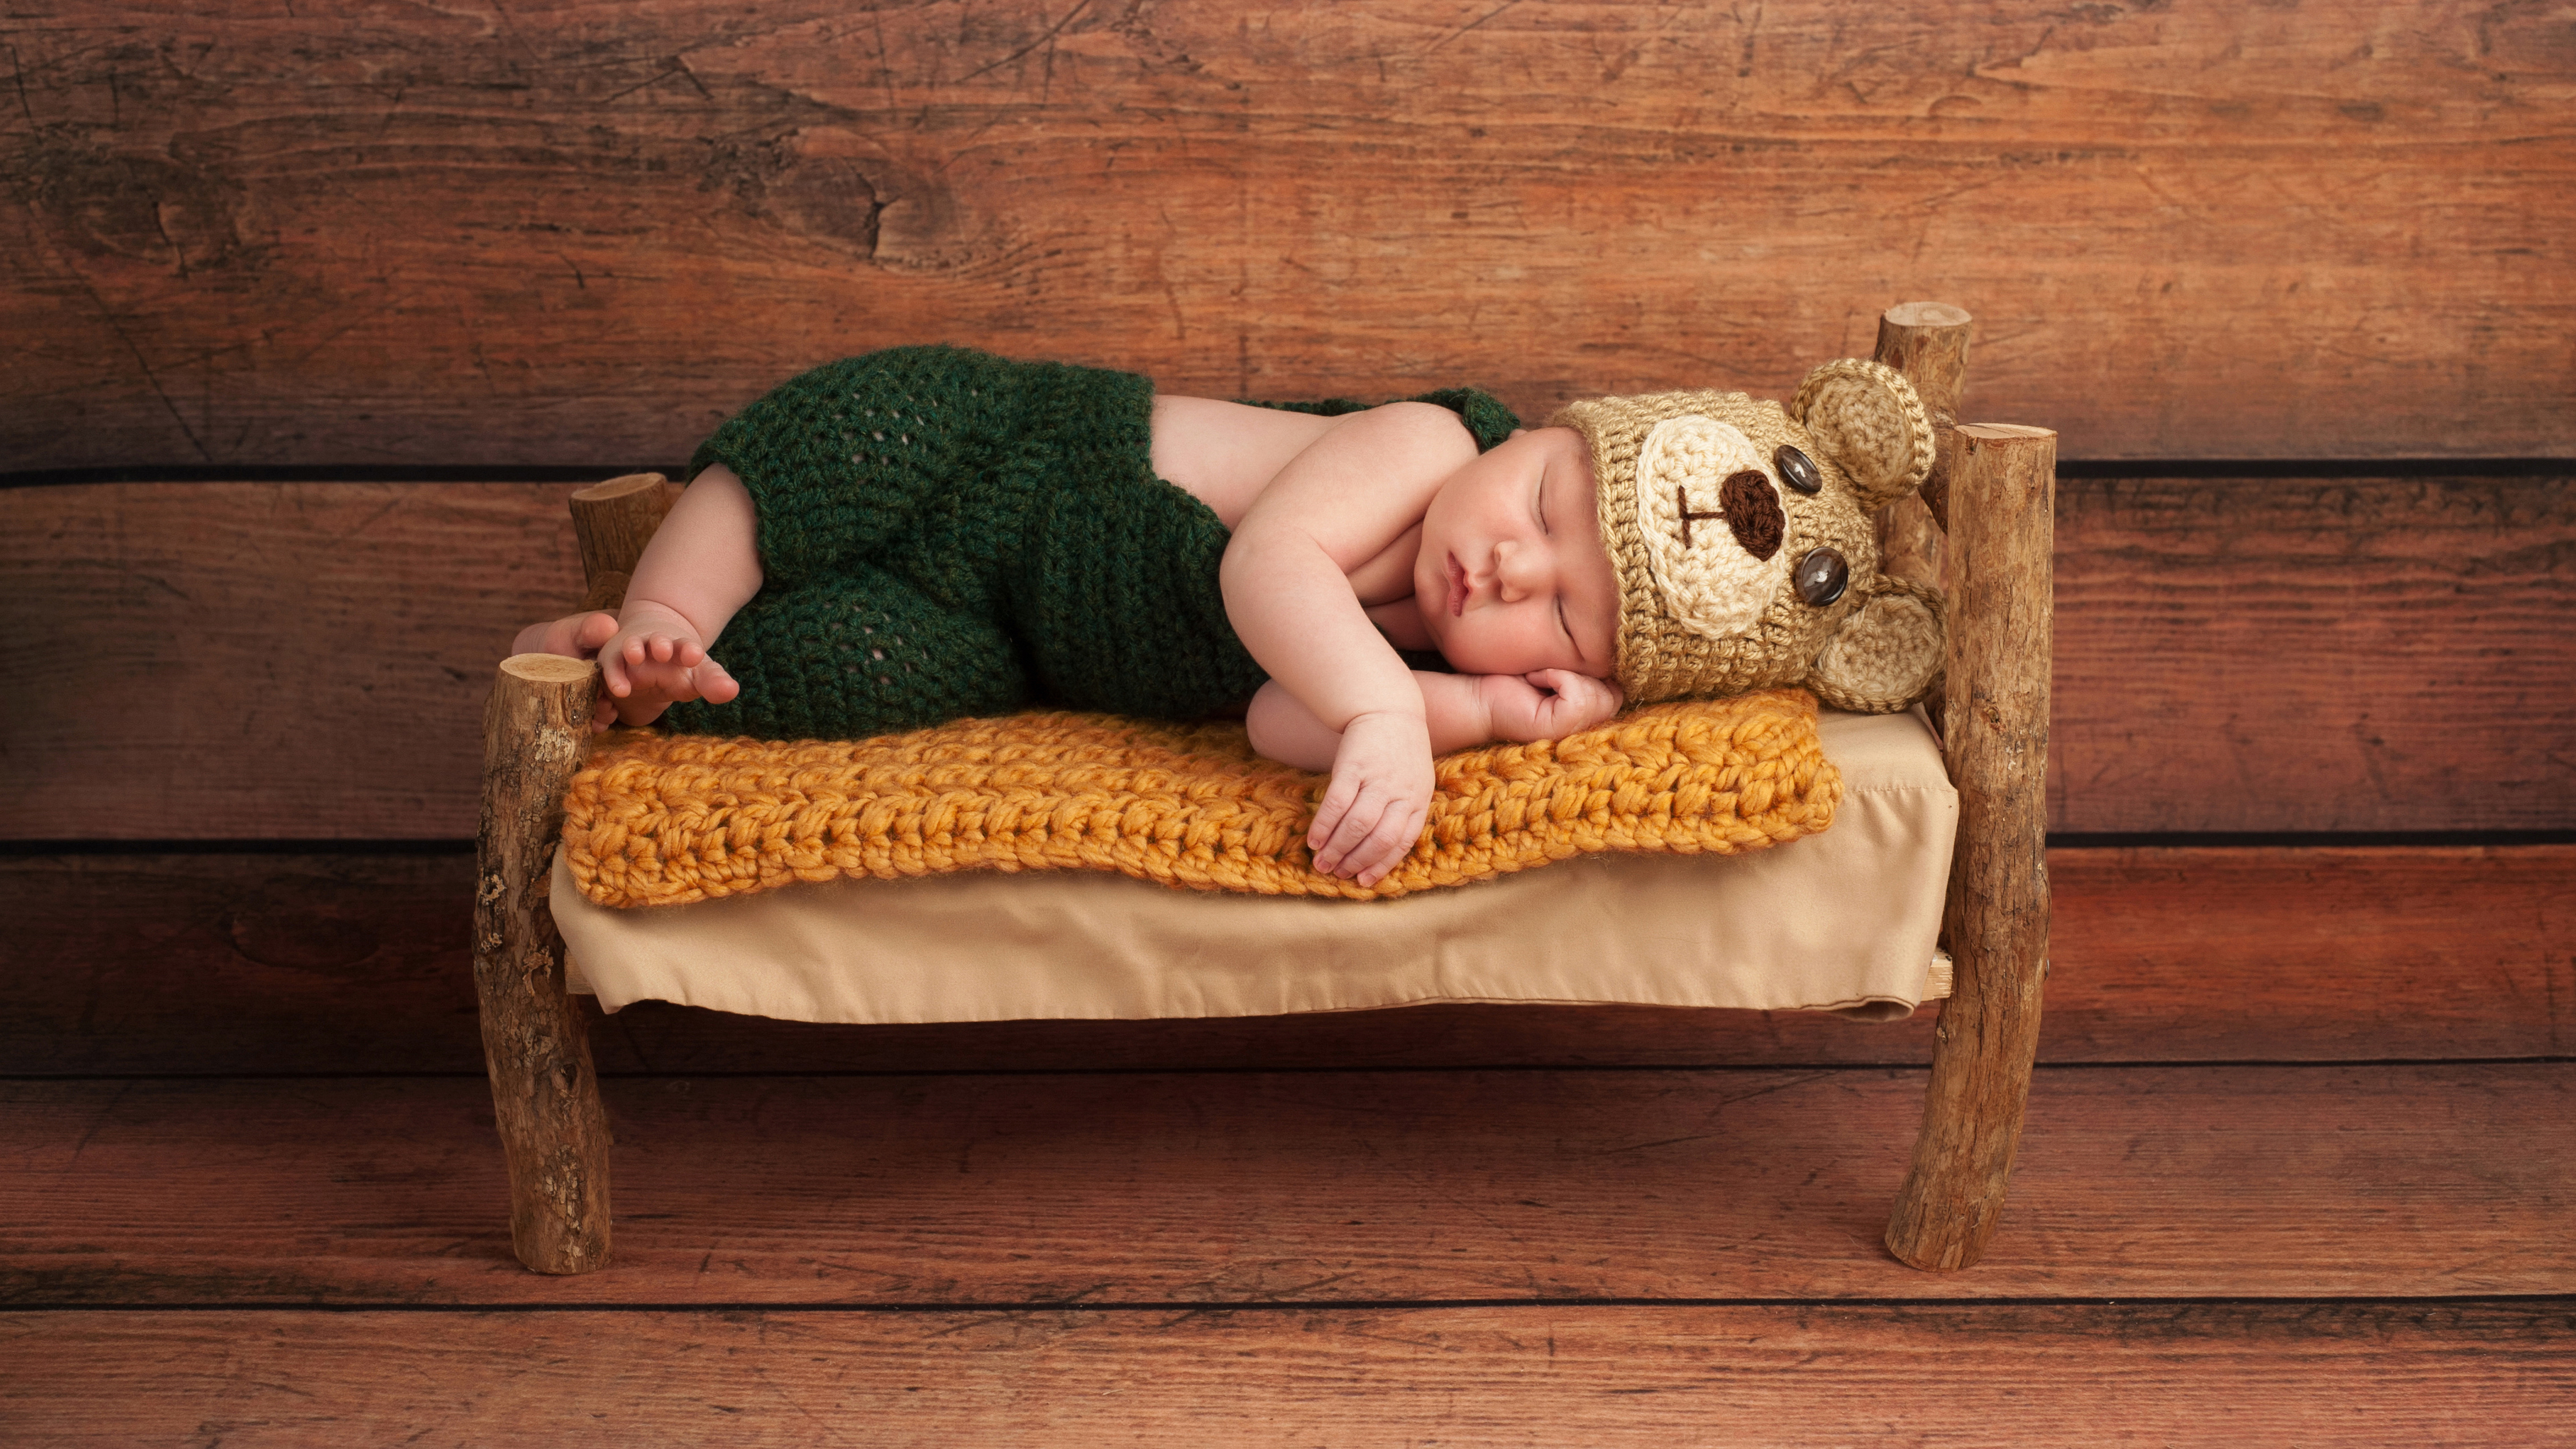 Tiny Bed newborn baby asleep on a tiny bed 4k ultra hd wallpaper and